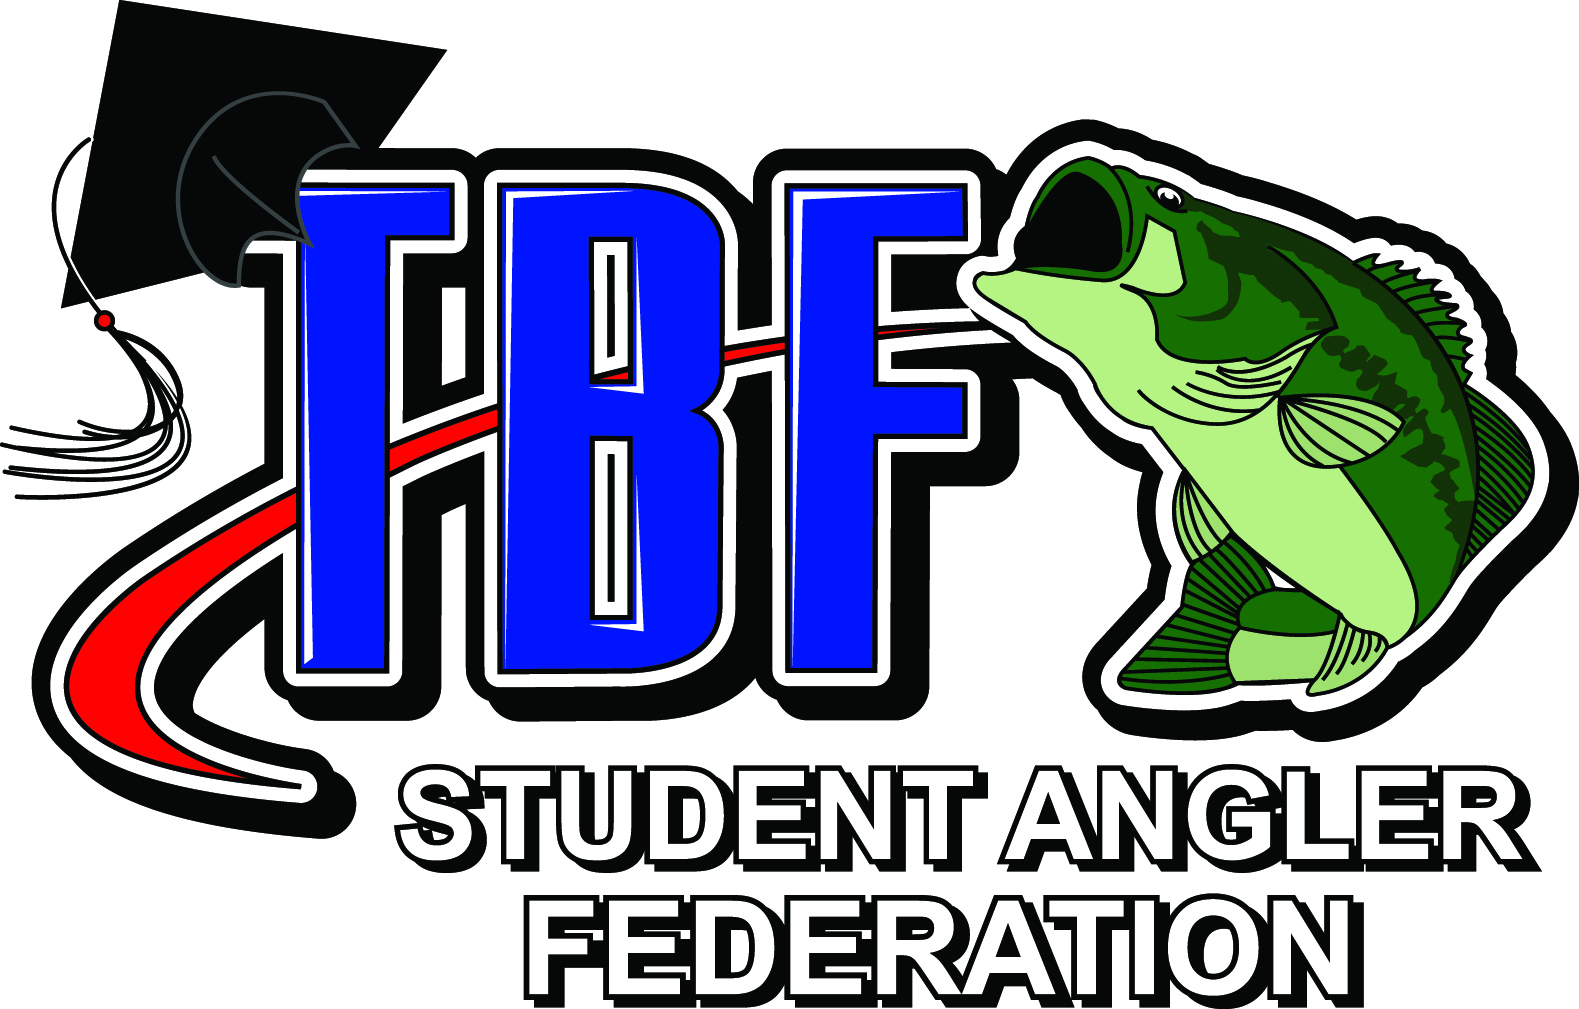 student angler federation graphic